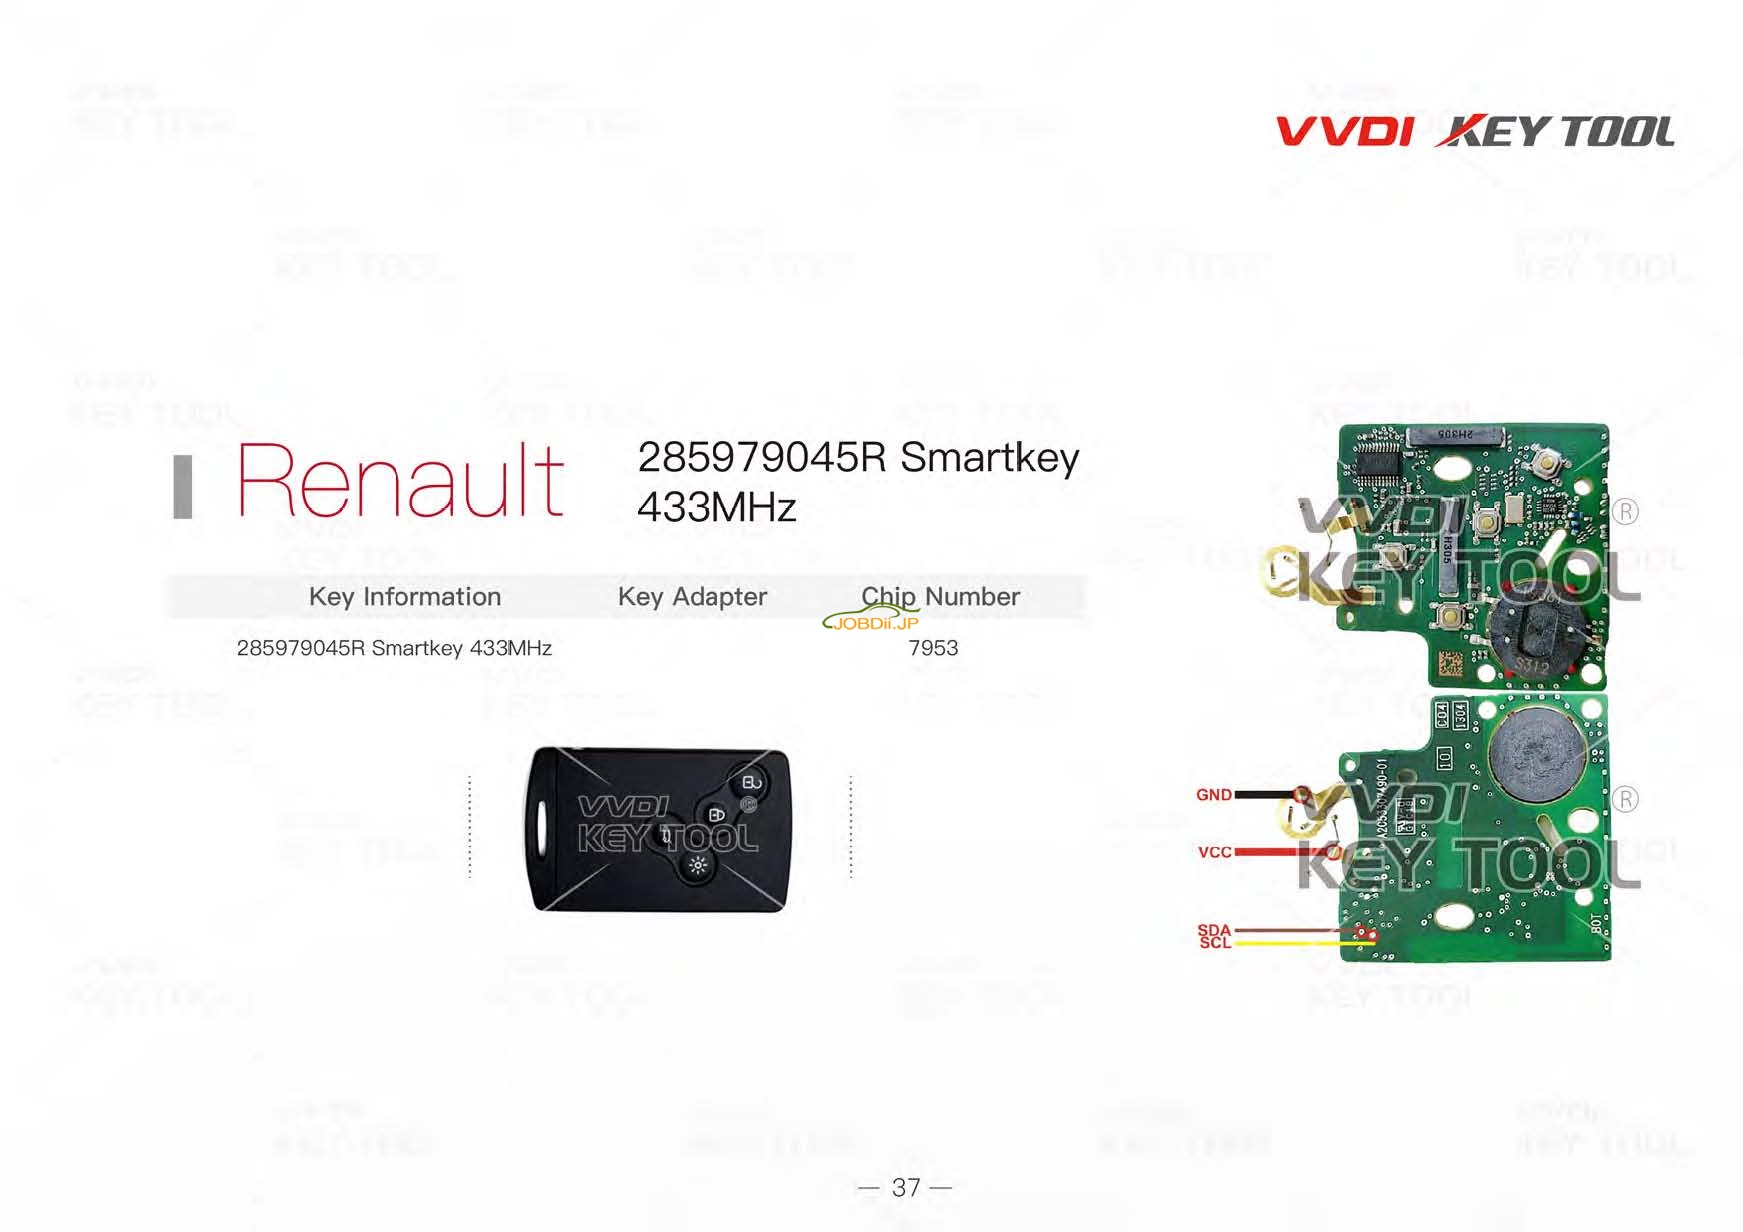 vvdi-key-tool-renew-diagram-37